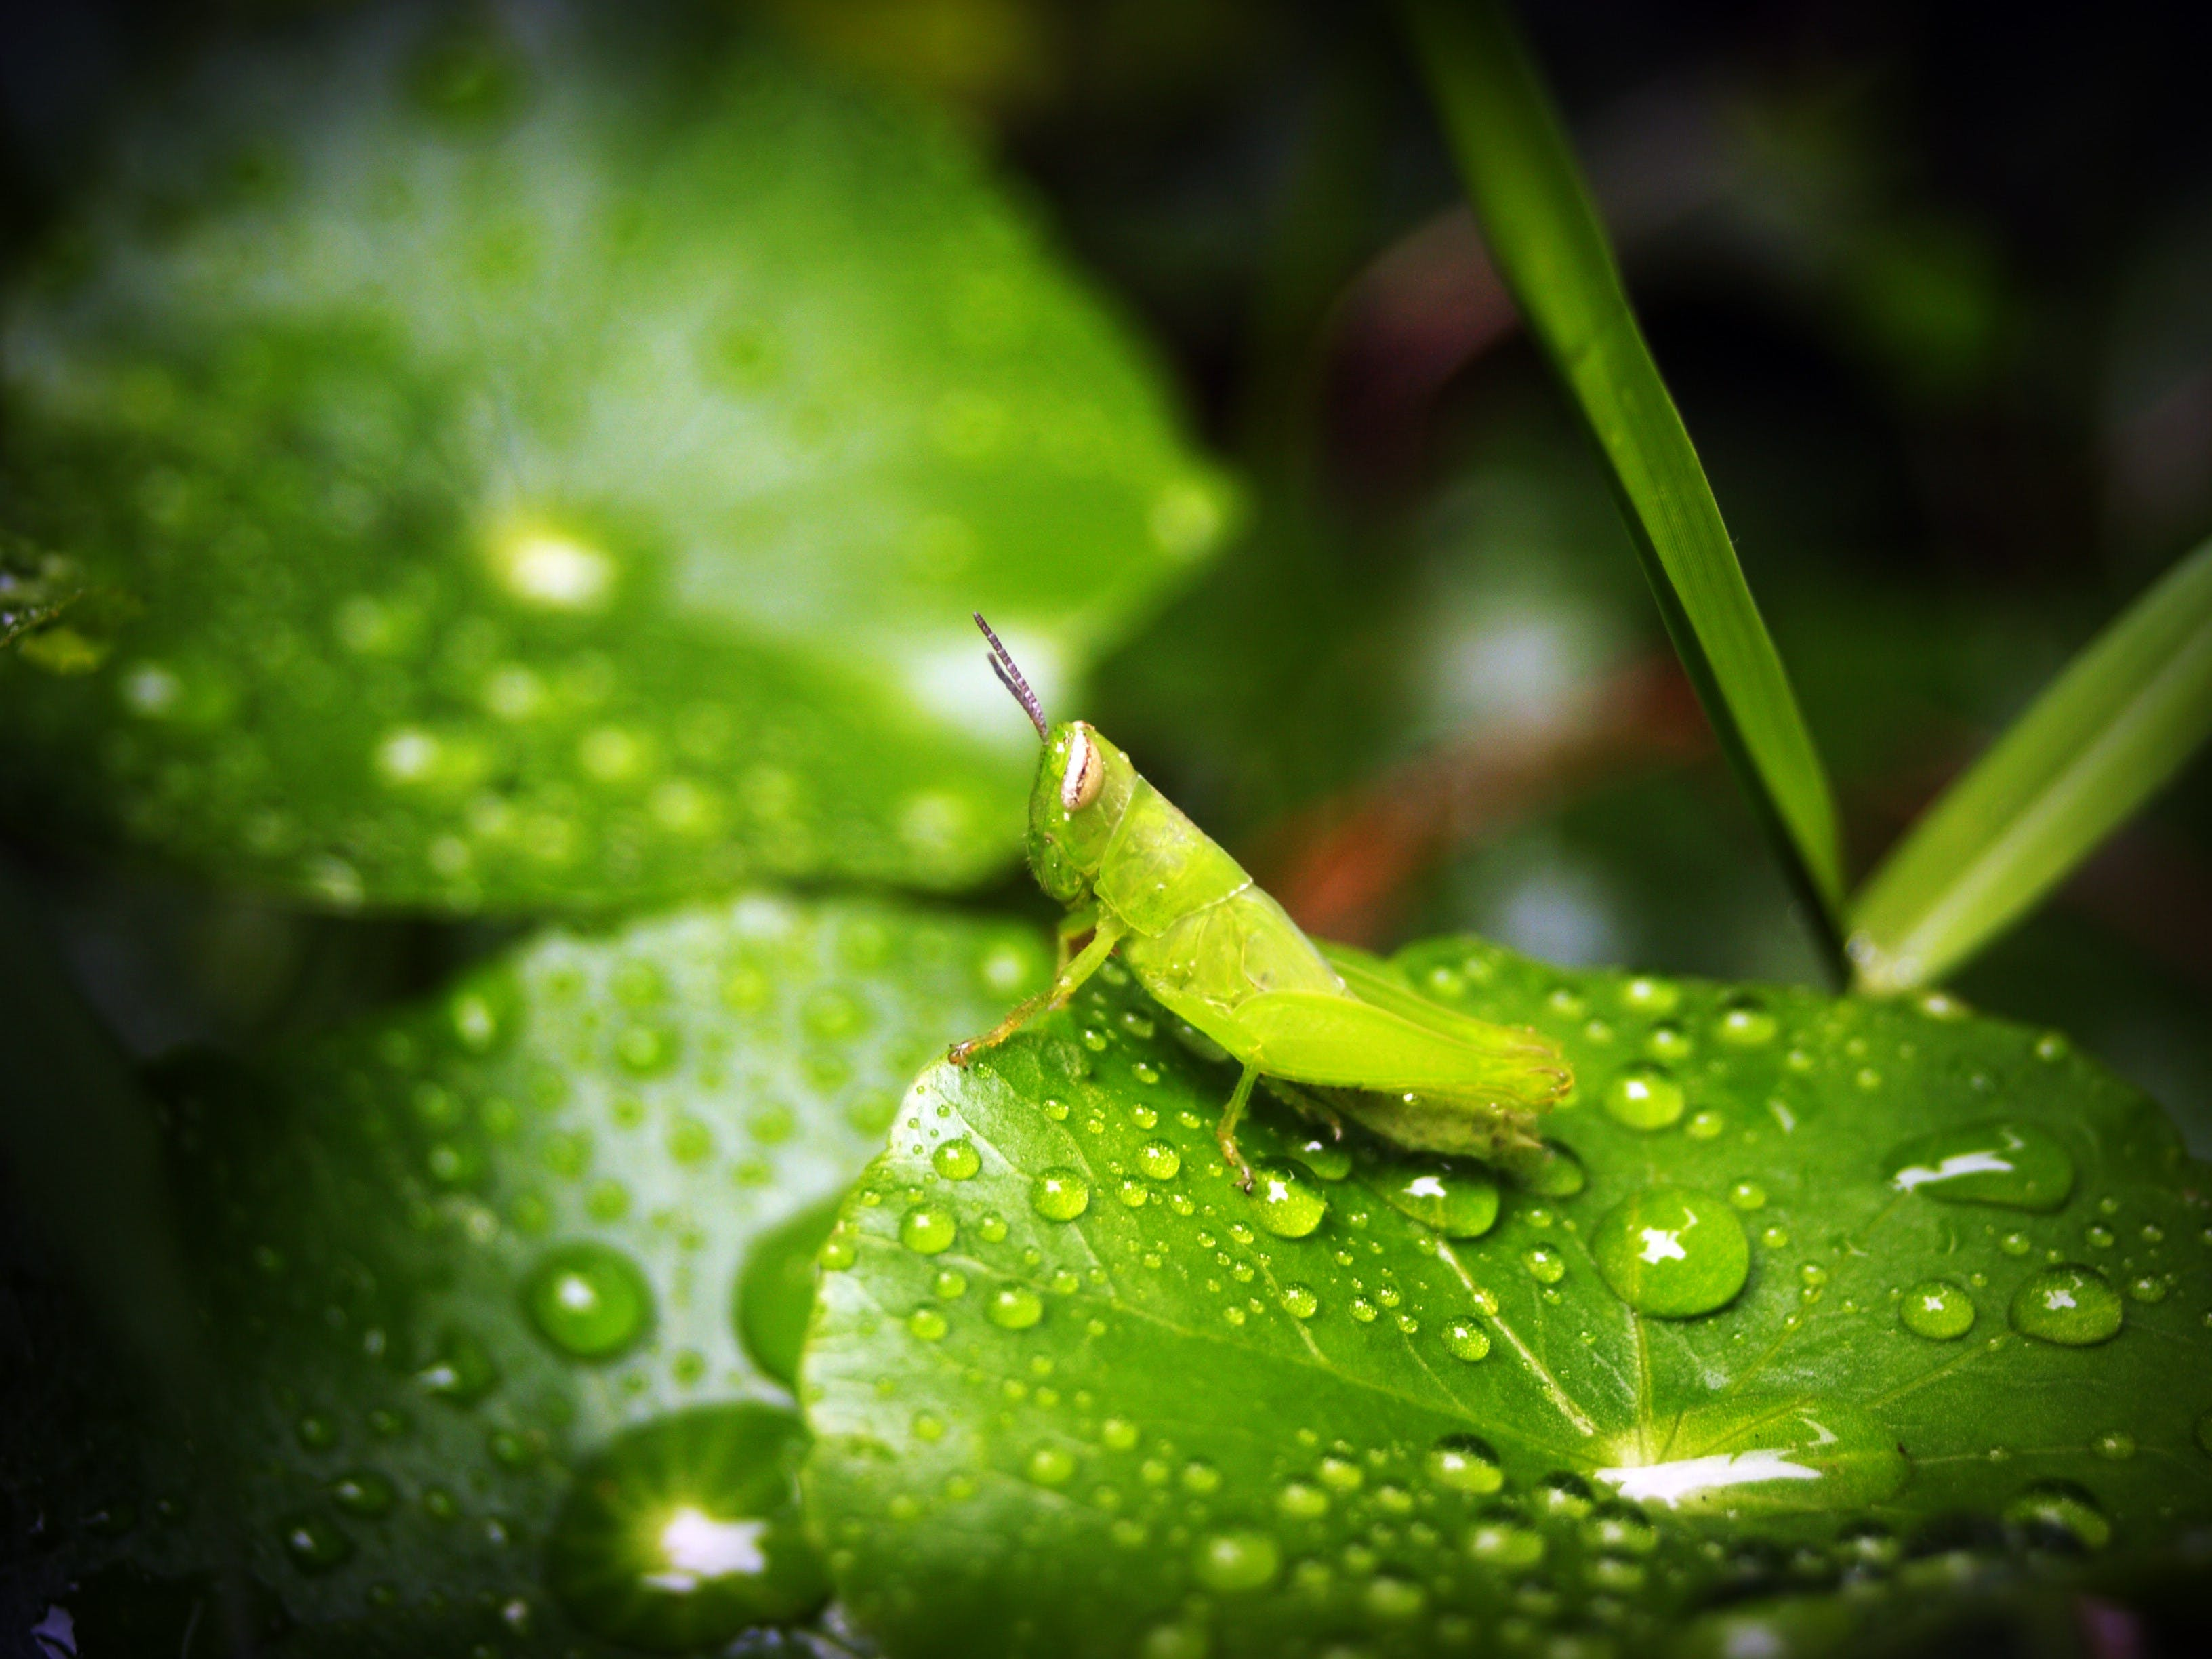 Green Grasshopper on Green Wet Leaf